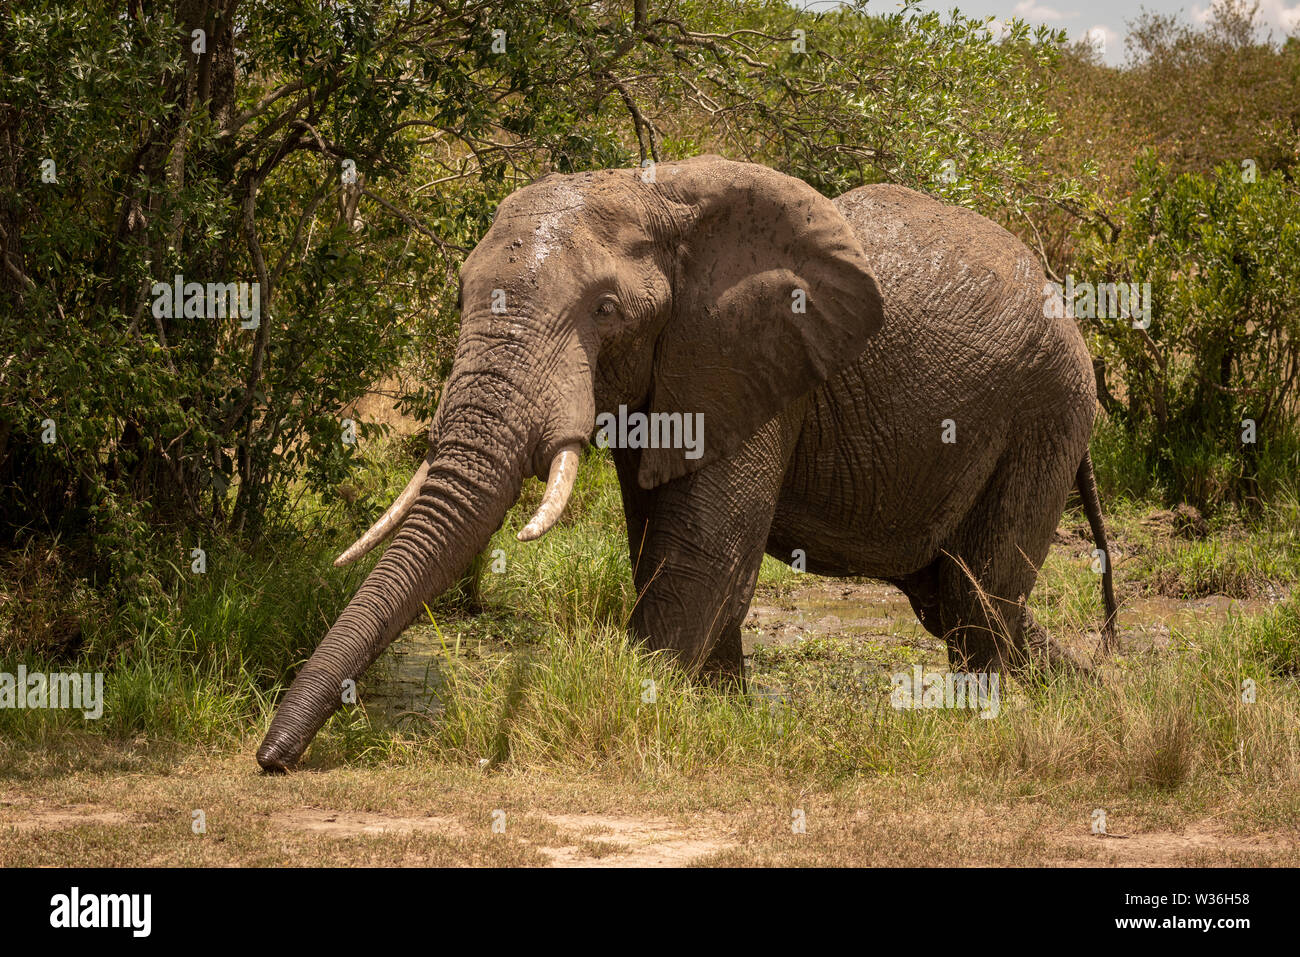 African bush elephant in mud stretches trunk - Stock Image